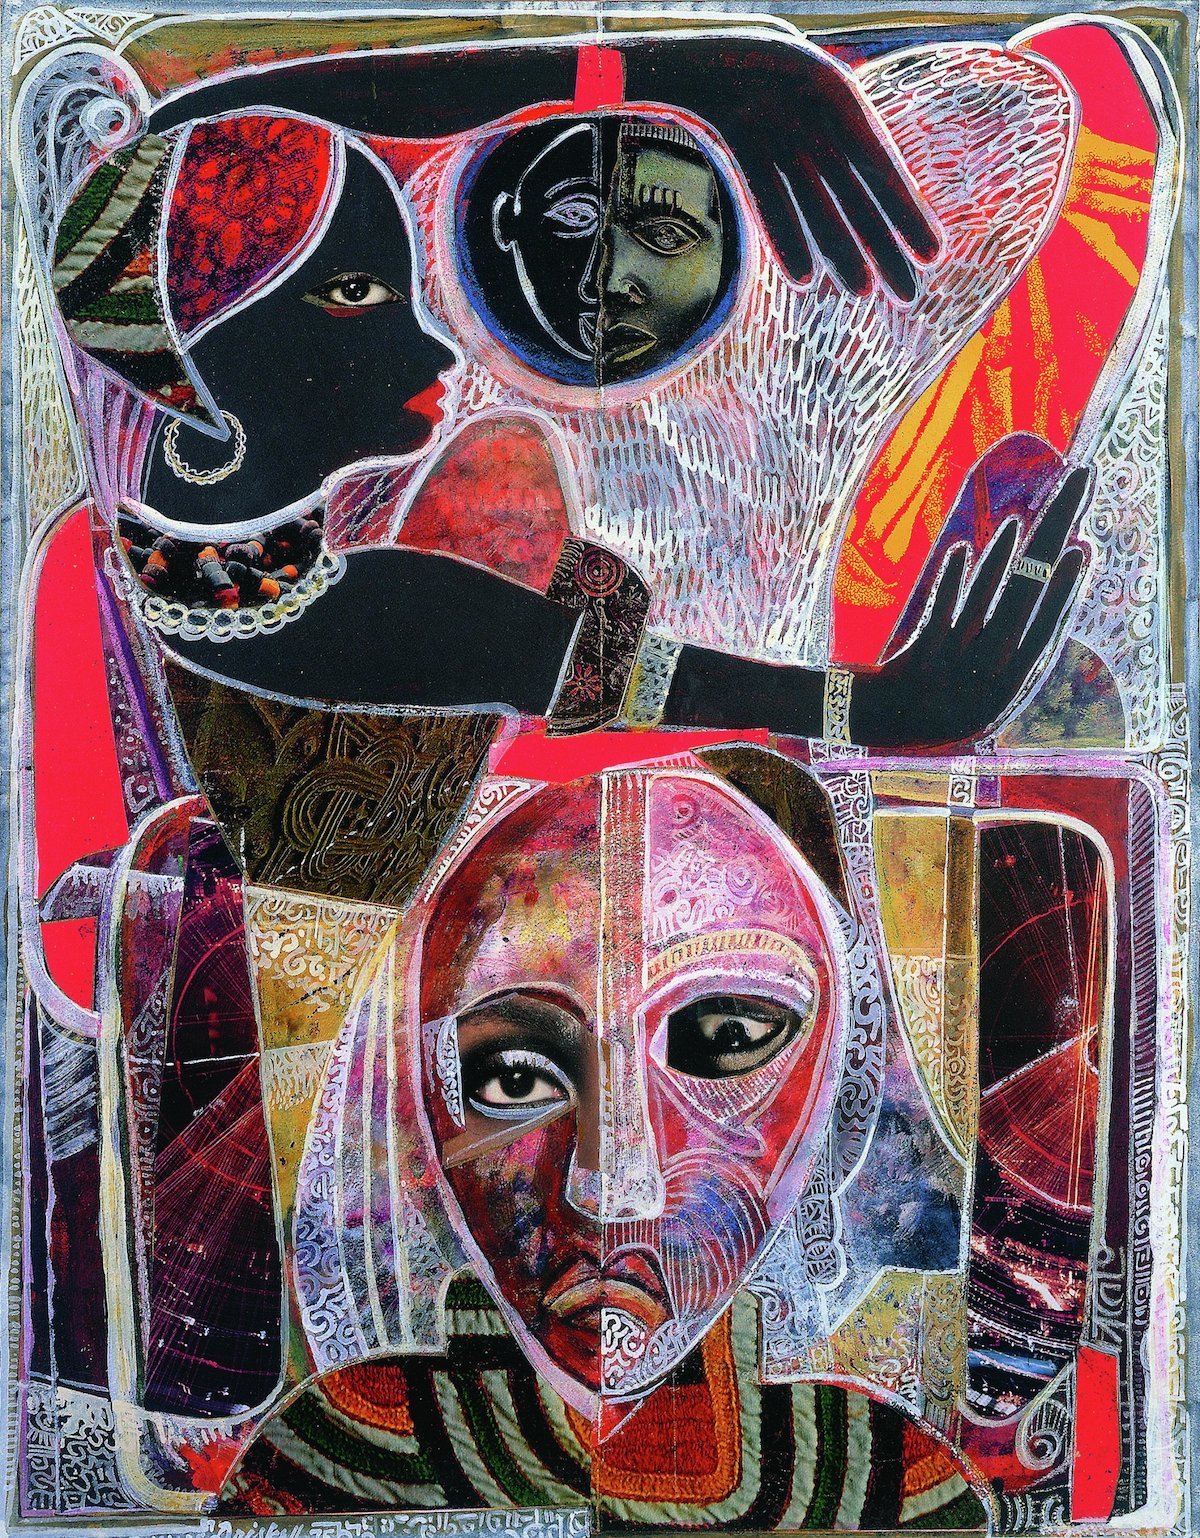 David C. Driskell, 'Memories of a Distant Past', 1975.